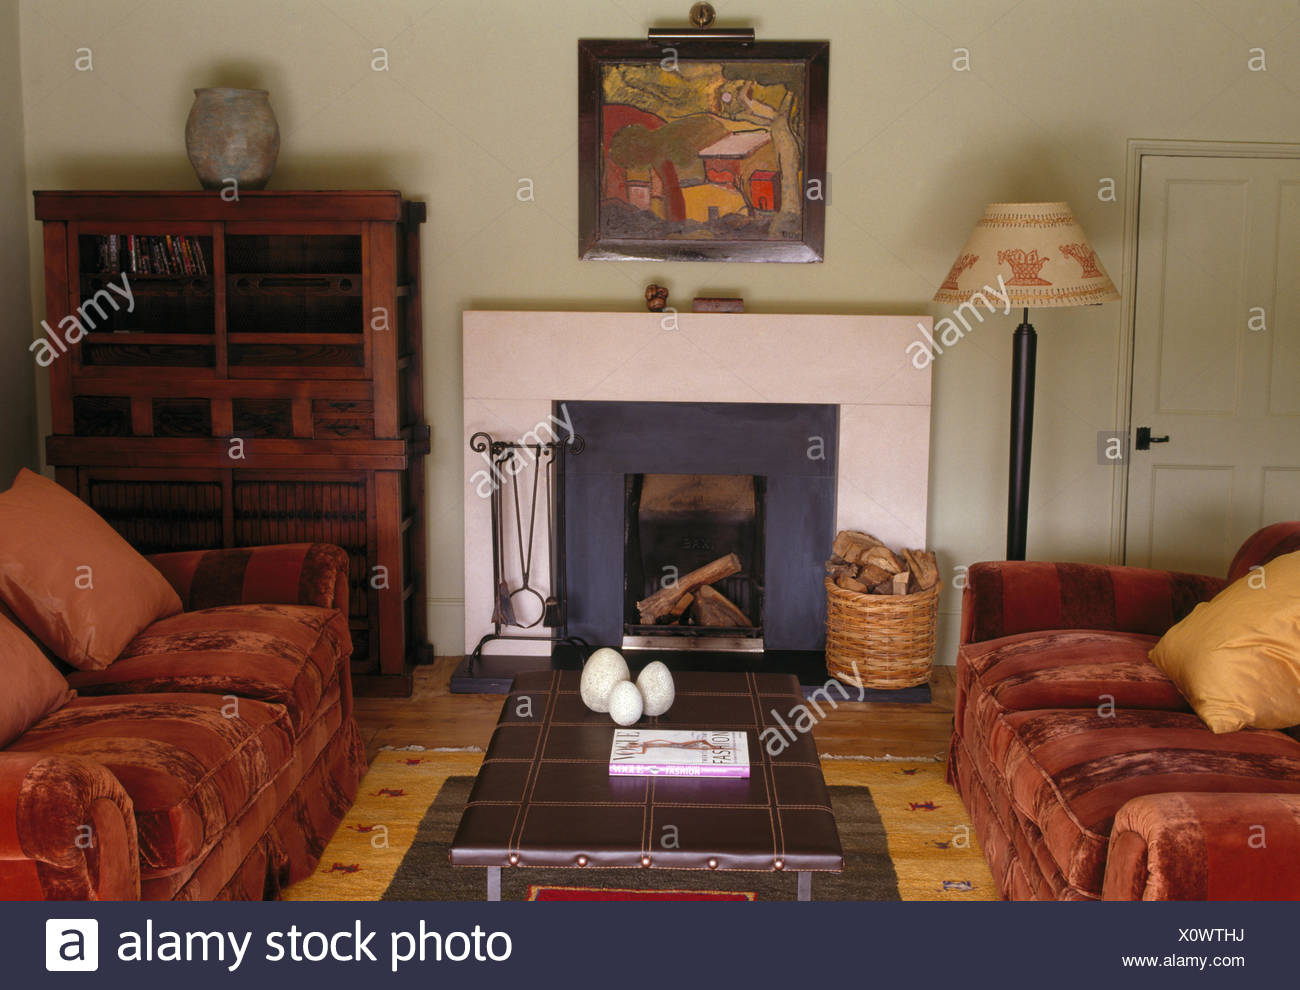 Brown velvet sofas on either side of tile topped coffee table in front of fireplace in forties style living room - Stock Image